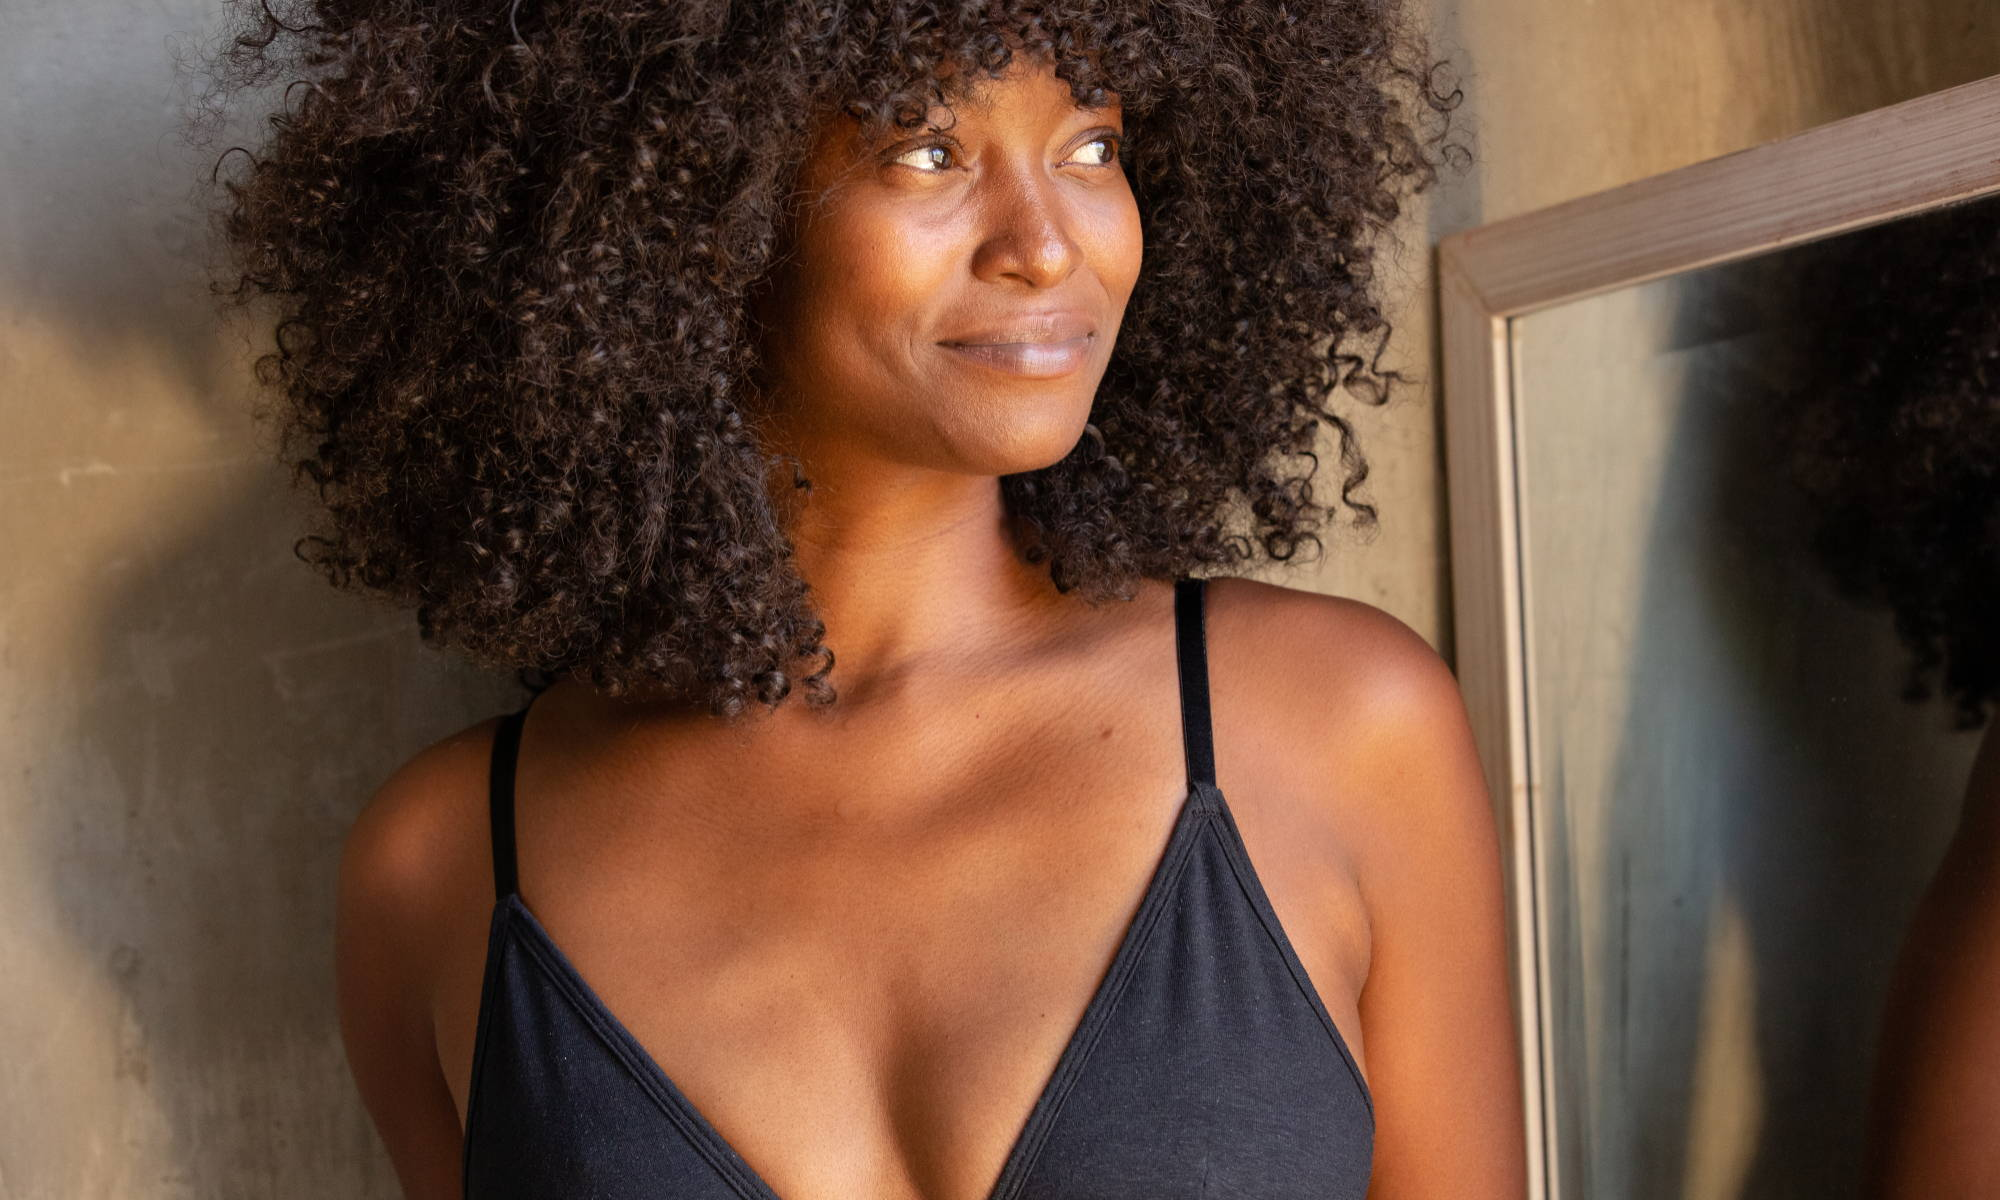 A woman wearing a black WAMA triangle bralette looks to the side, wondering how to get deodorant stains out of bras.